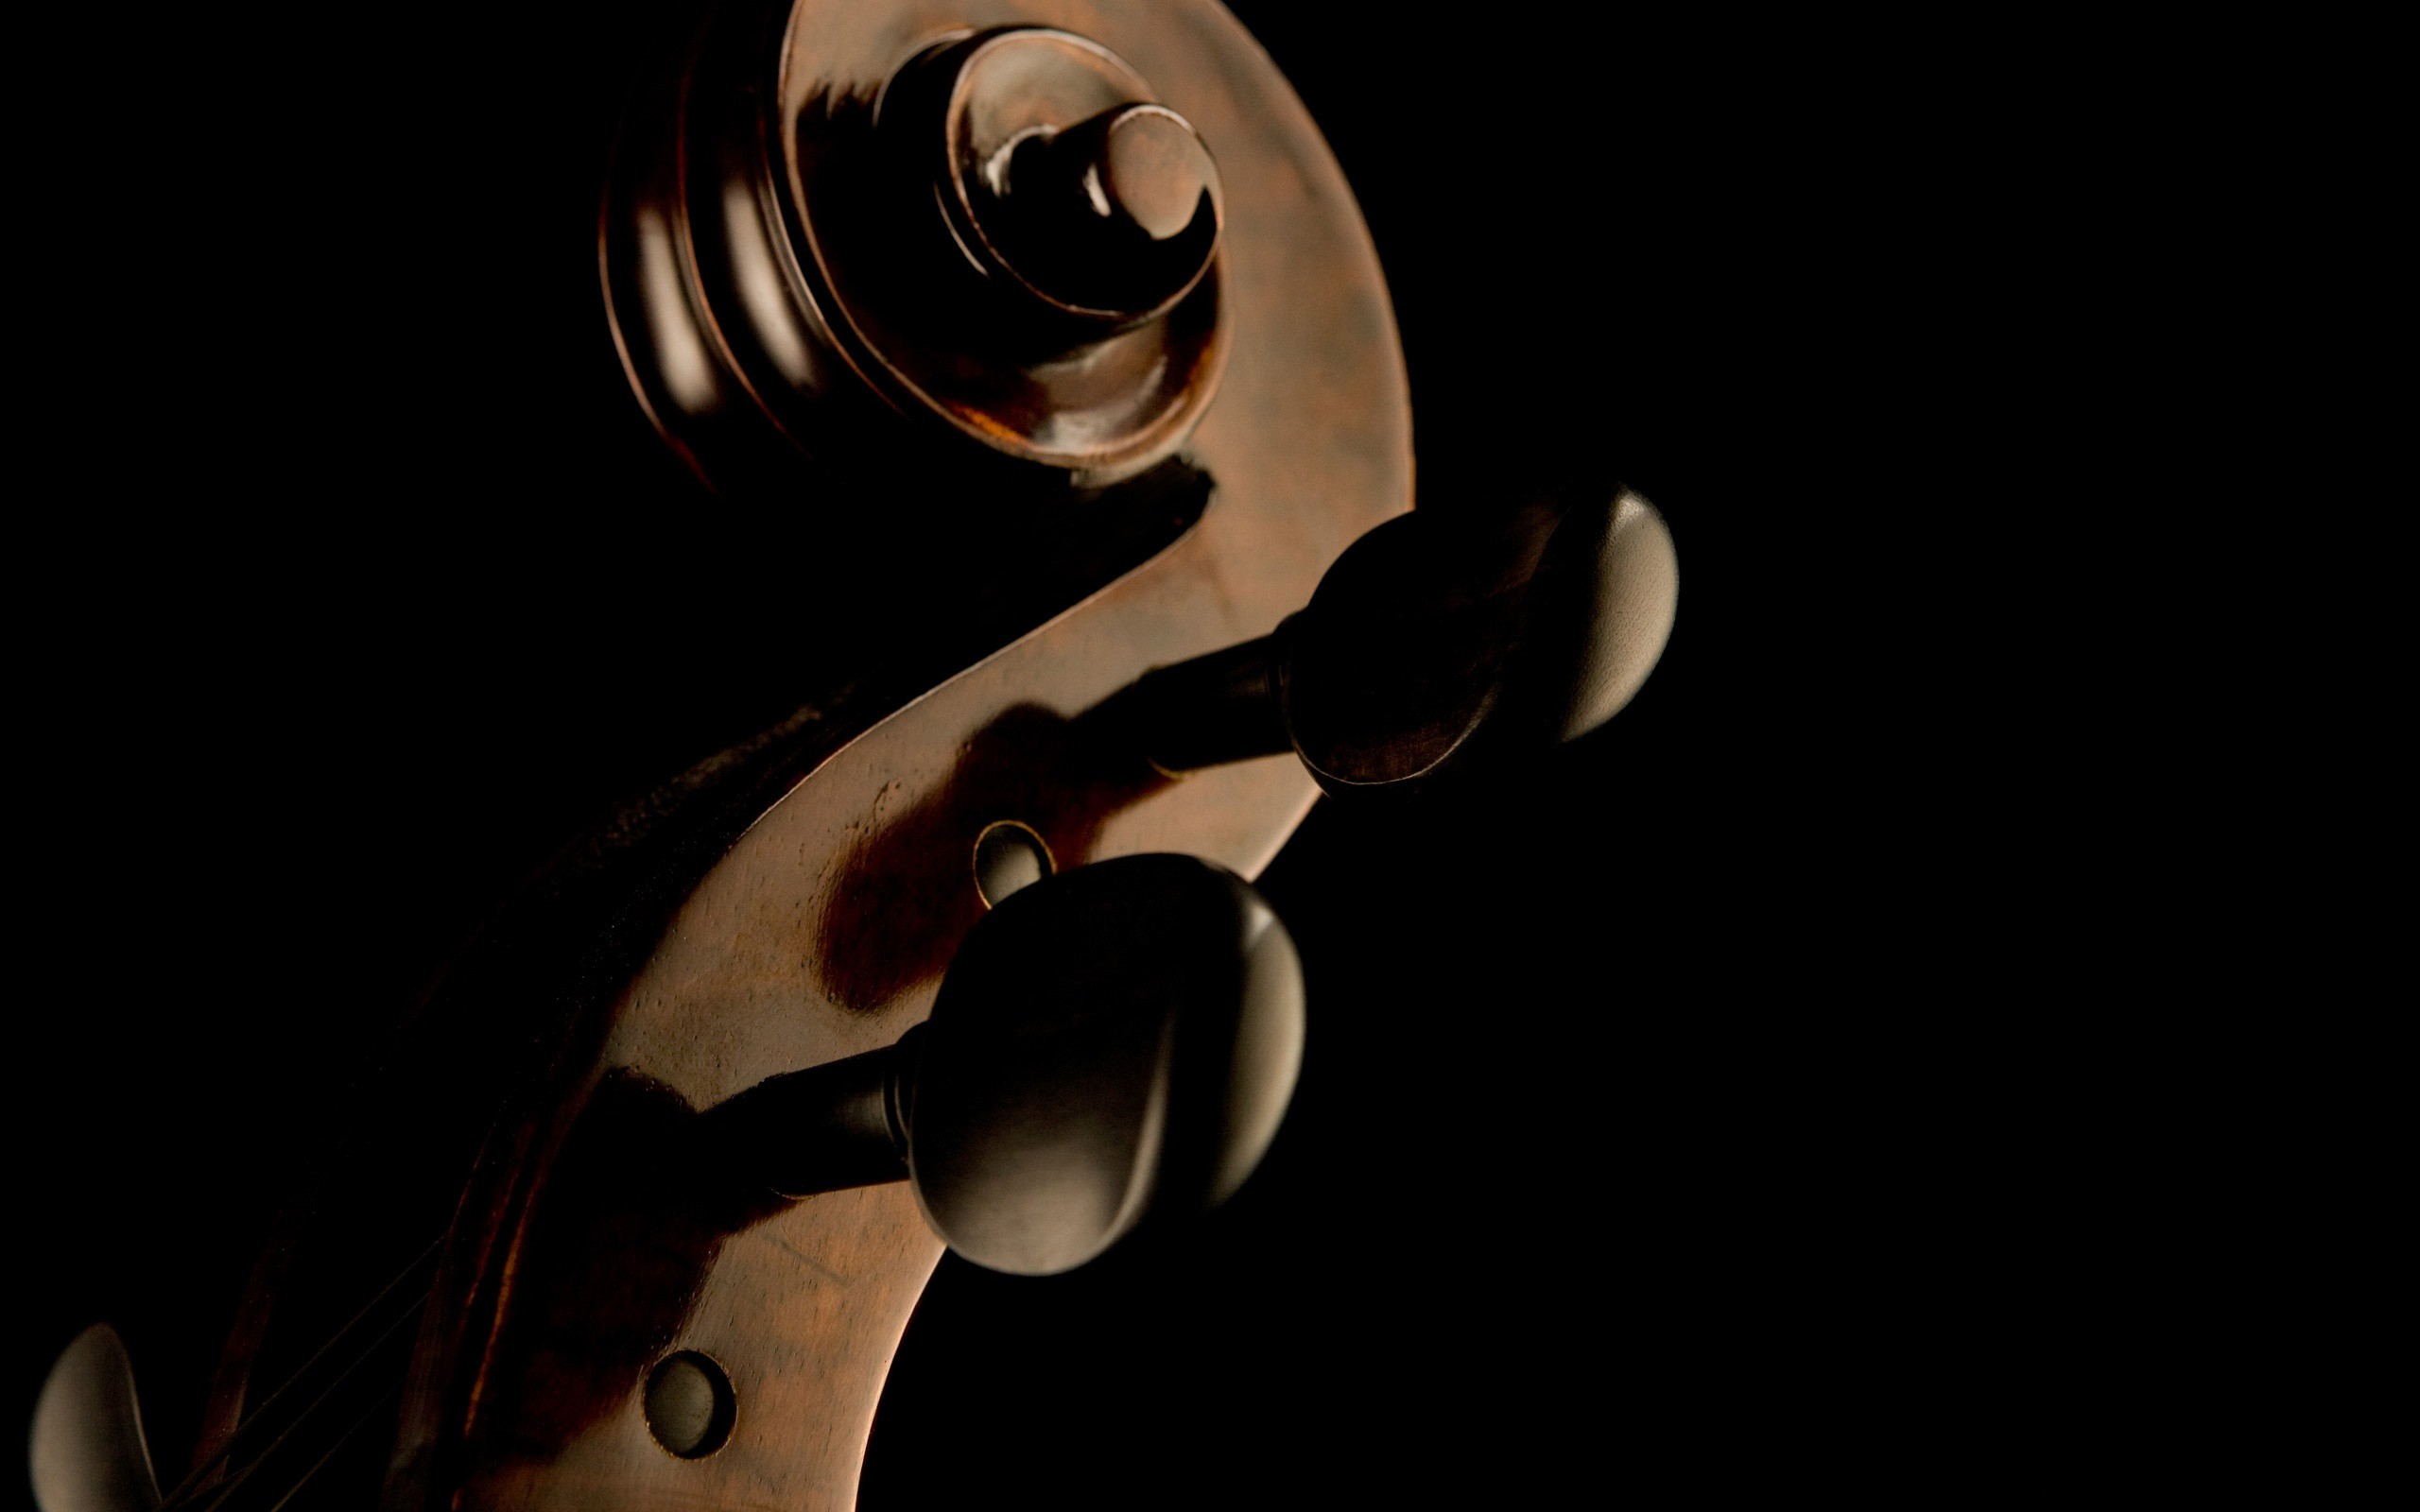 Cello Wallpaper Photo 22287 Hd Pictures: Backgrounds - Wallpaper Abyss